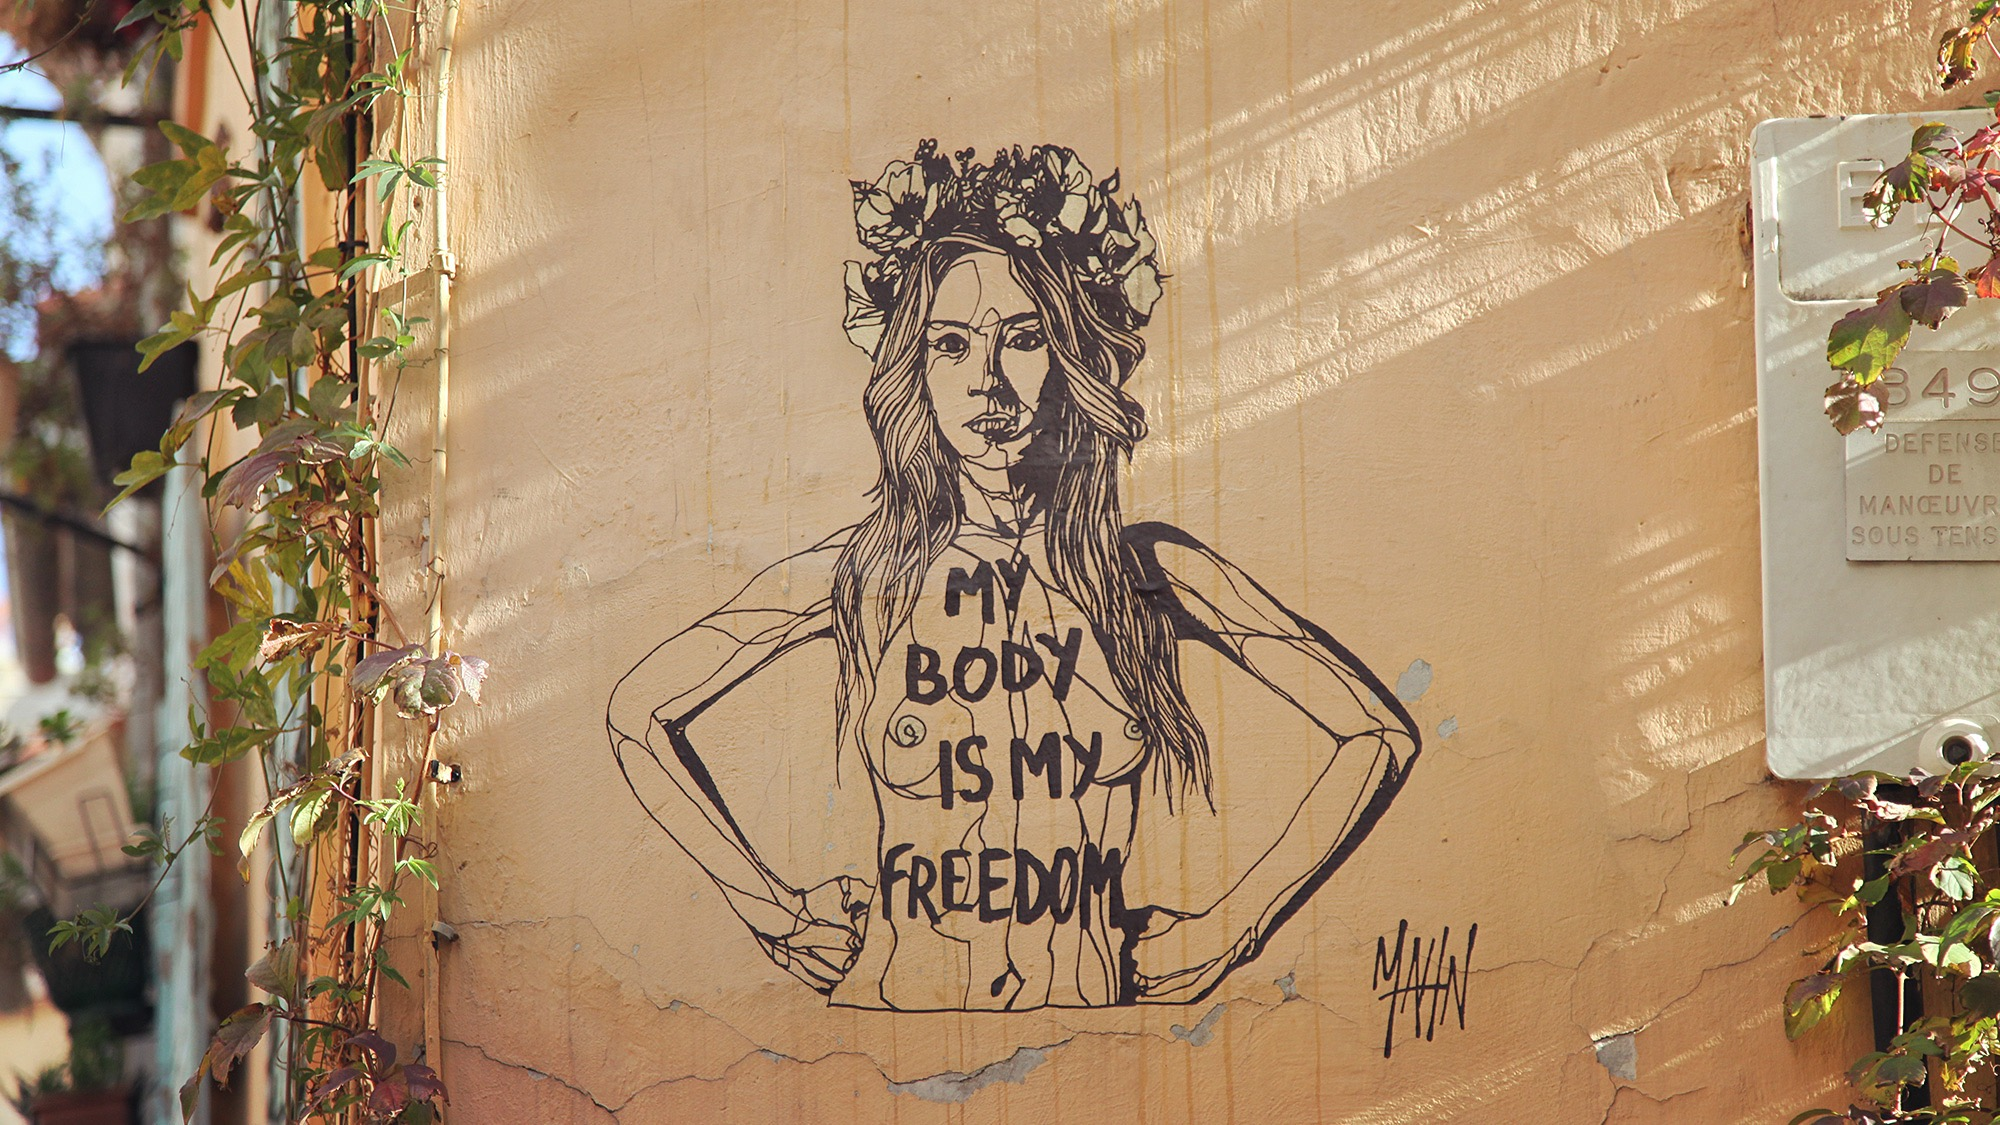 Mahn Kloix Femen MY BODY IS MY FREEDOM